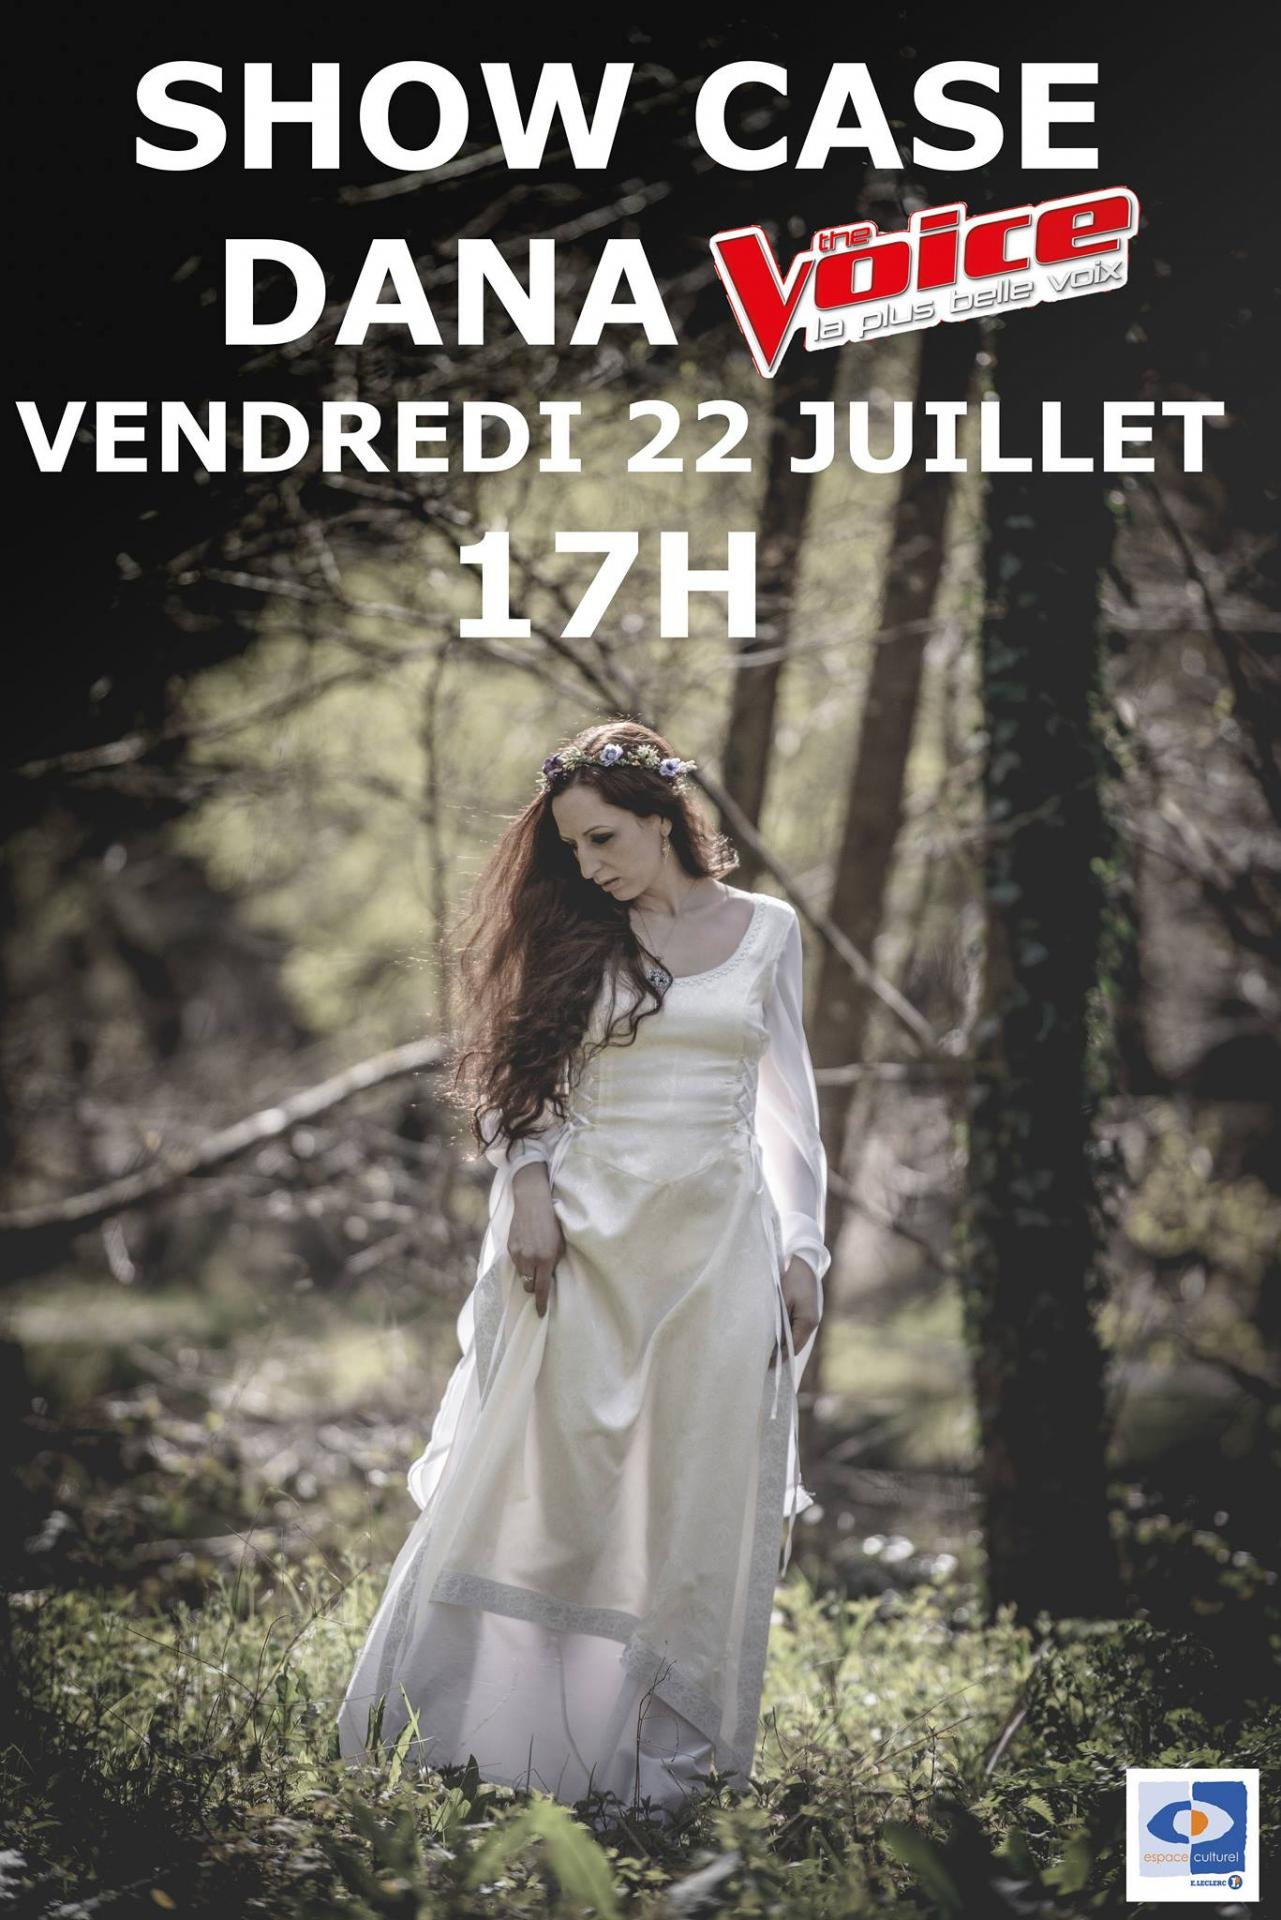 Showcase dana 22 juillet 1